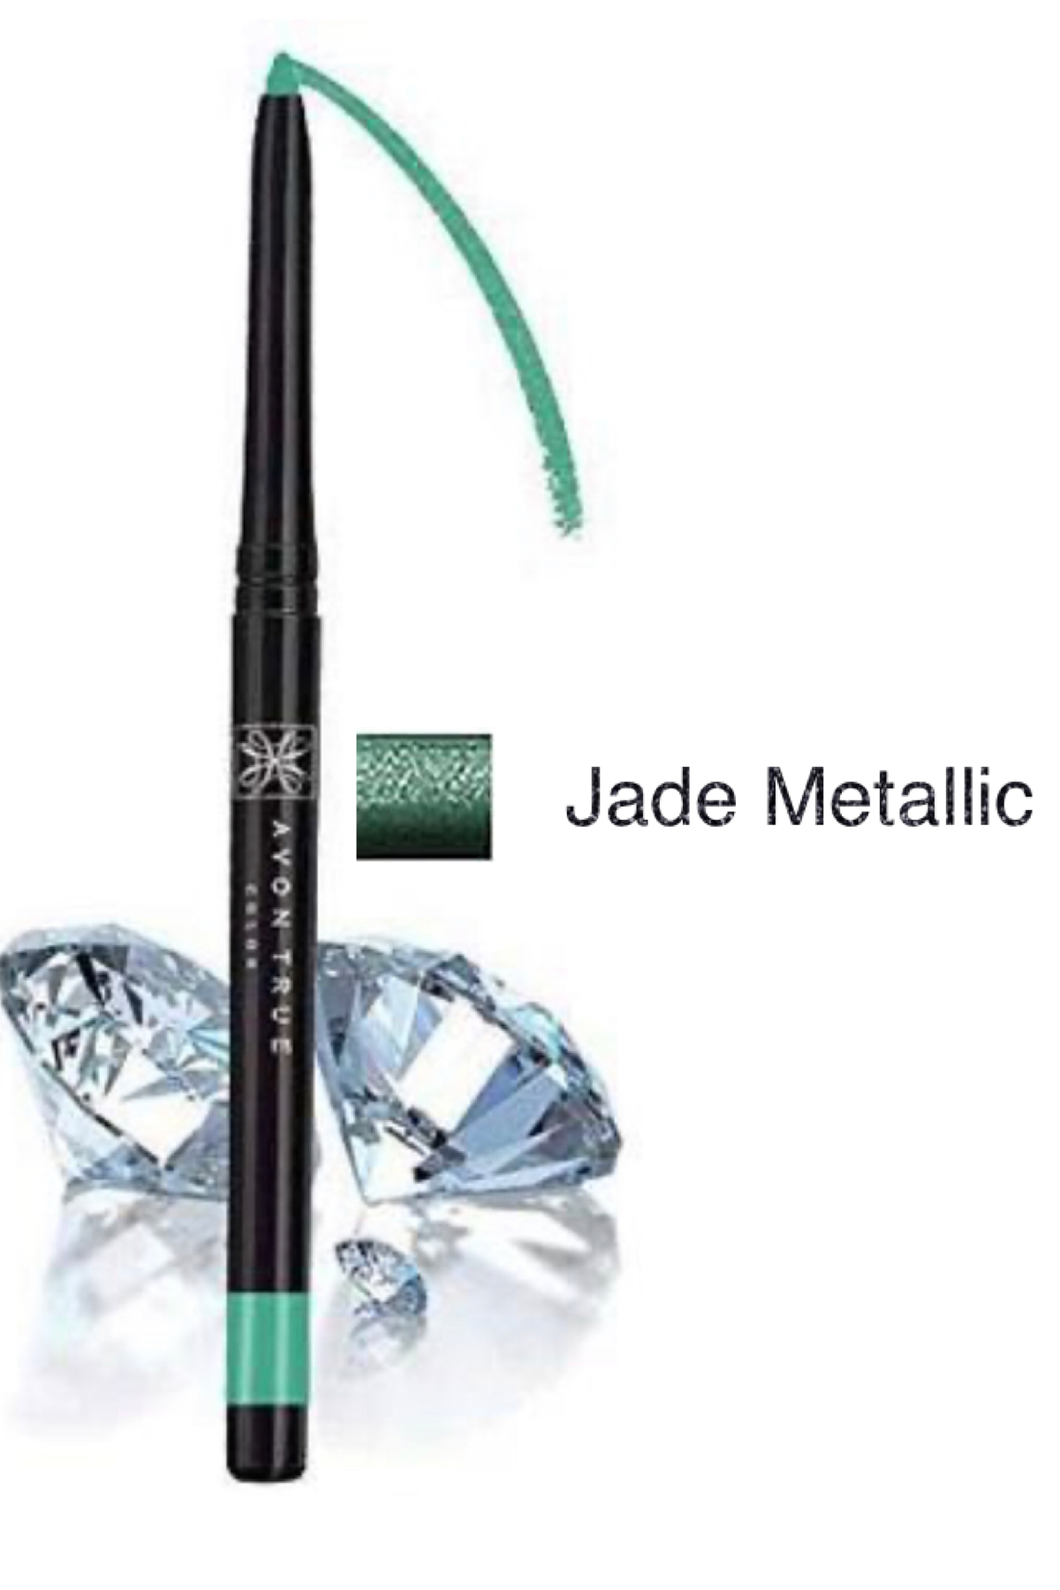 Jade Metallic Glimmerstick Diamonds